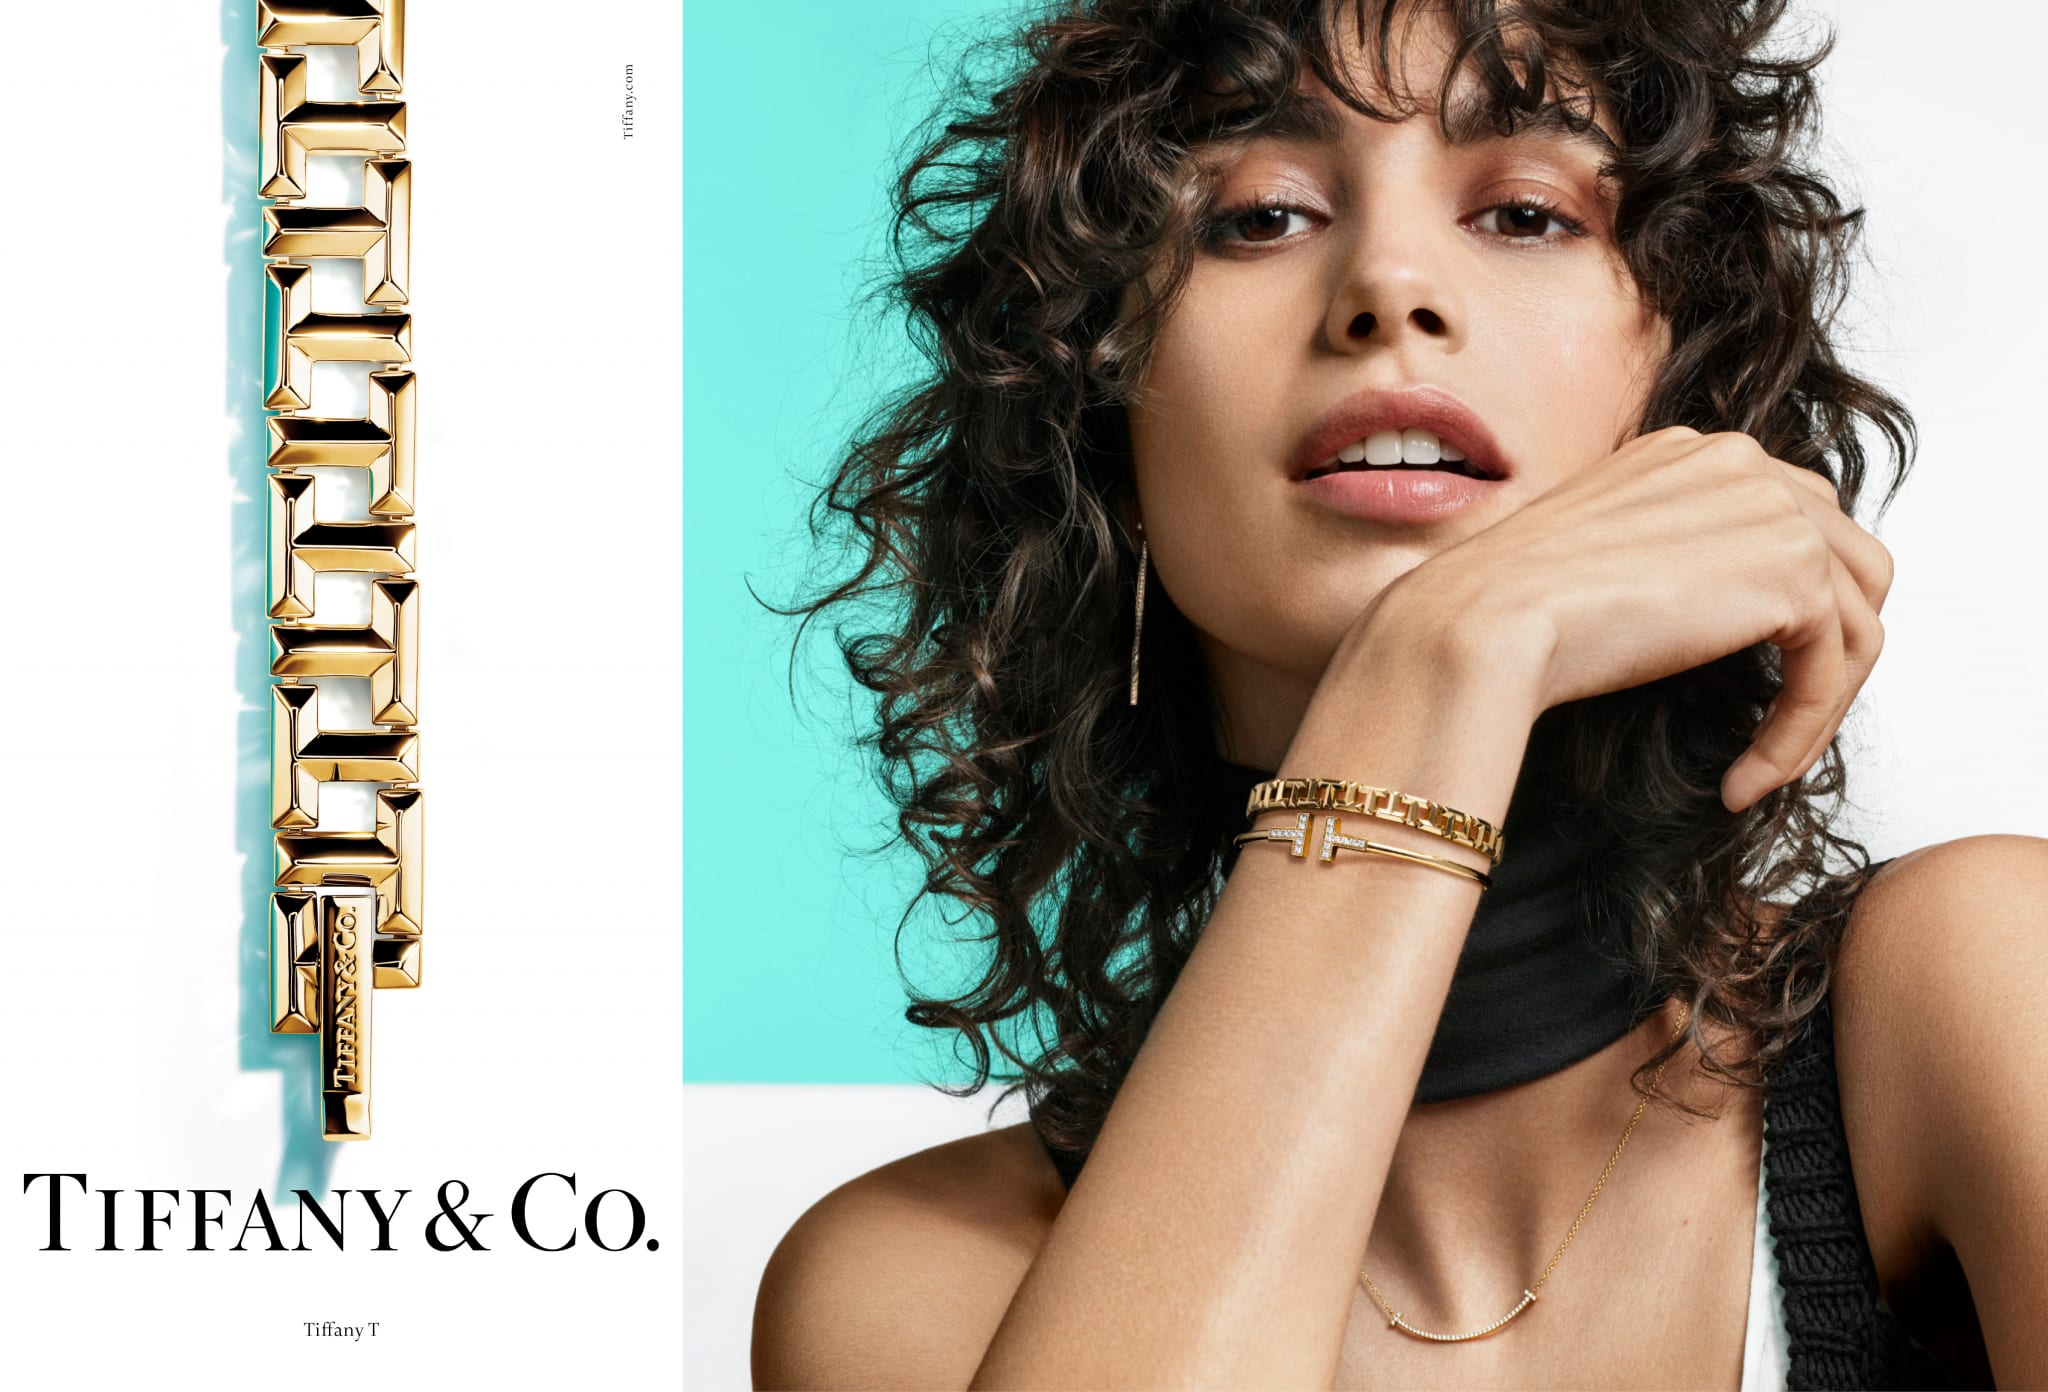 Tiffany & Co secures biggest global influencers for SS19 campaign